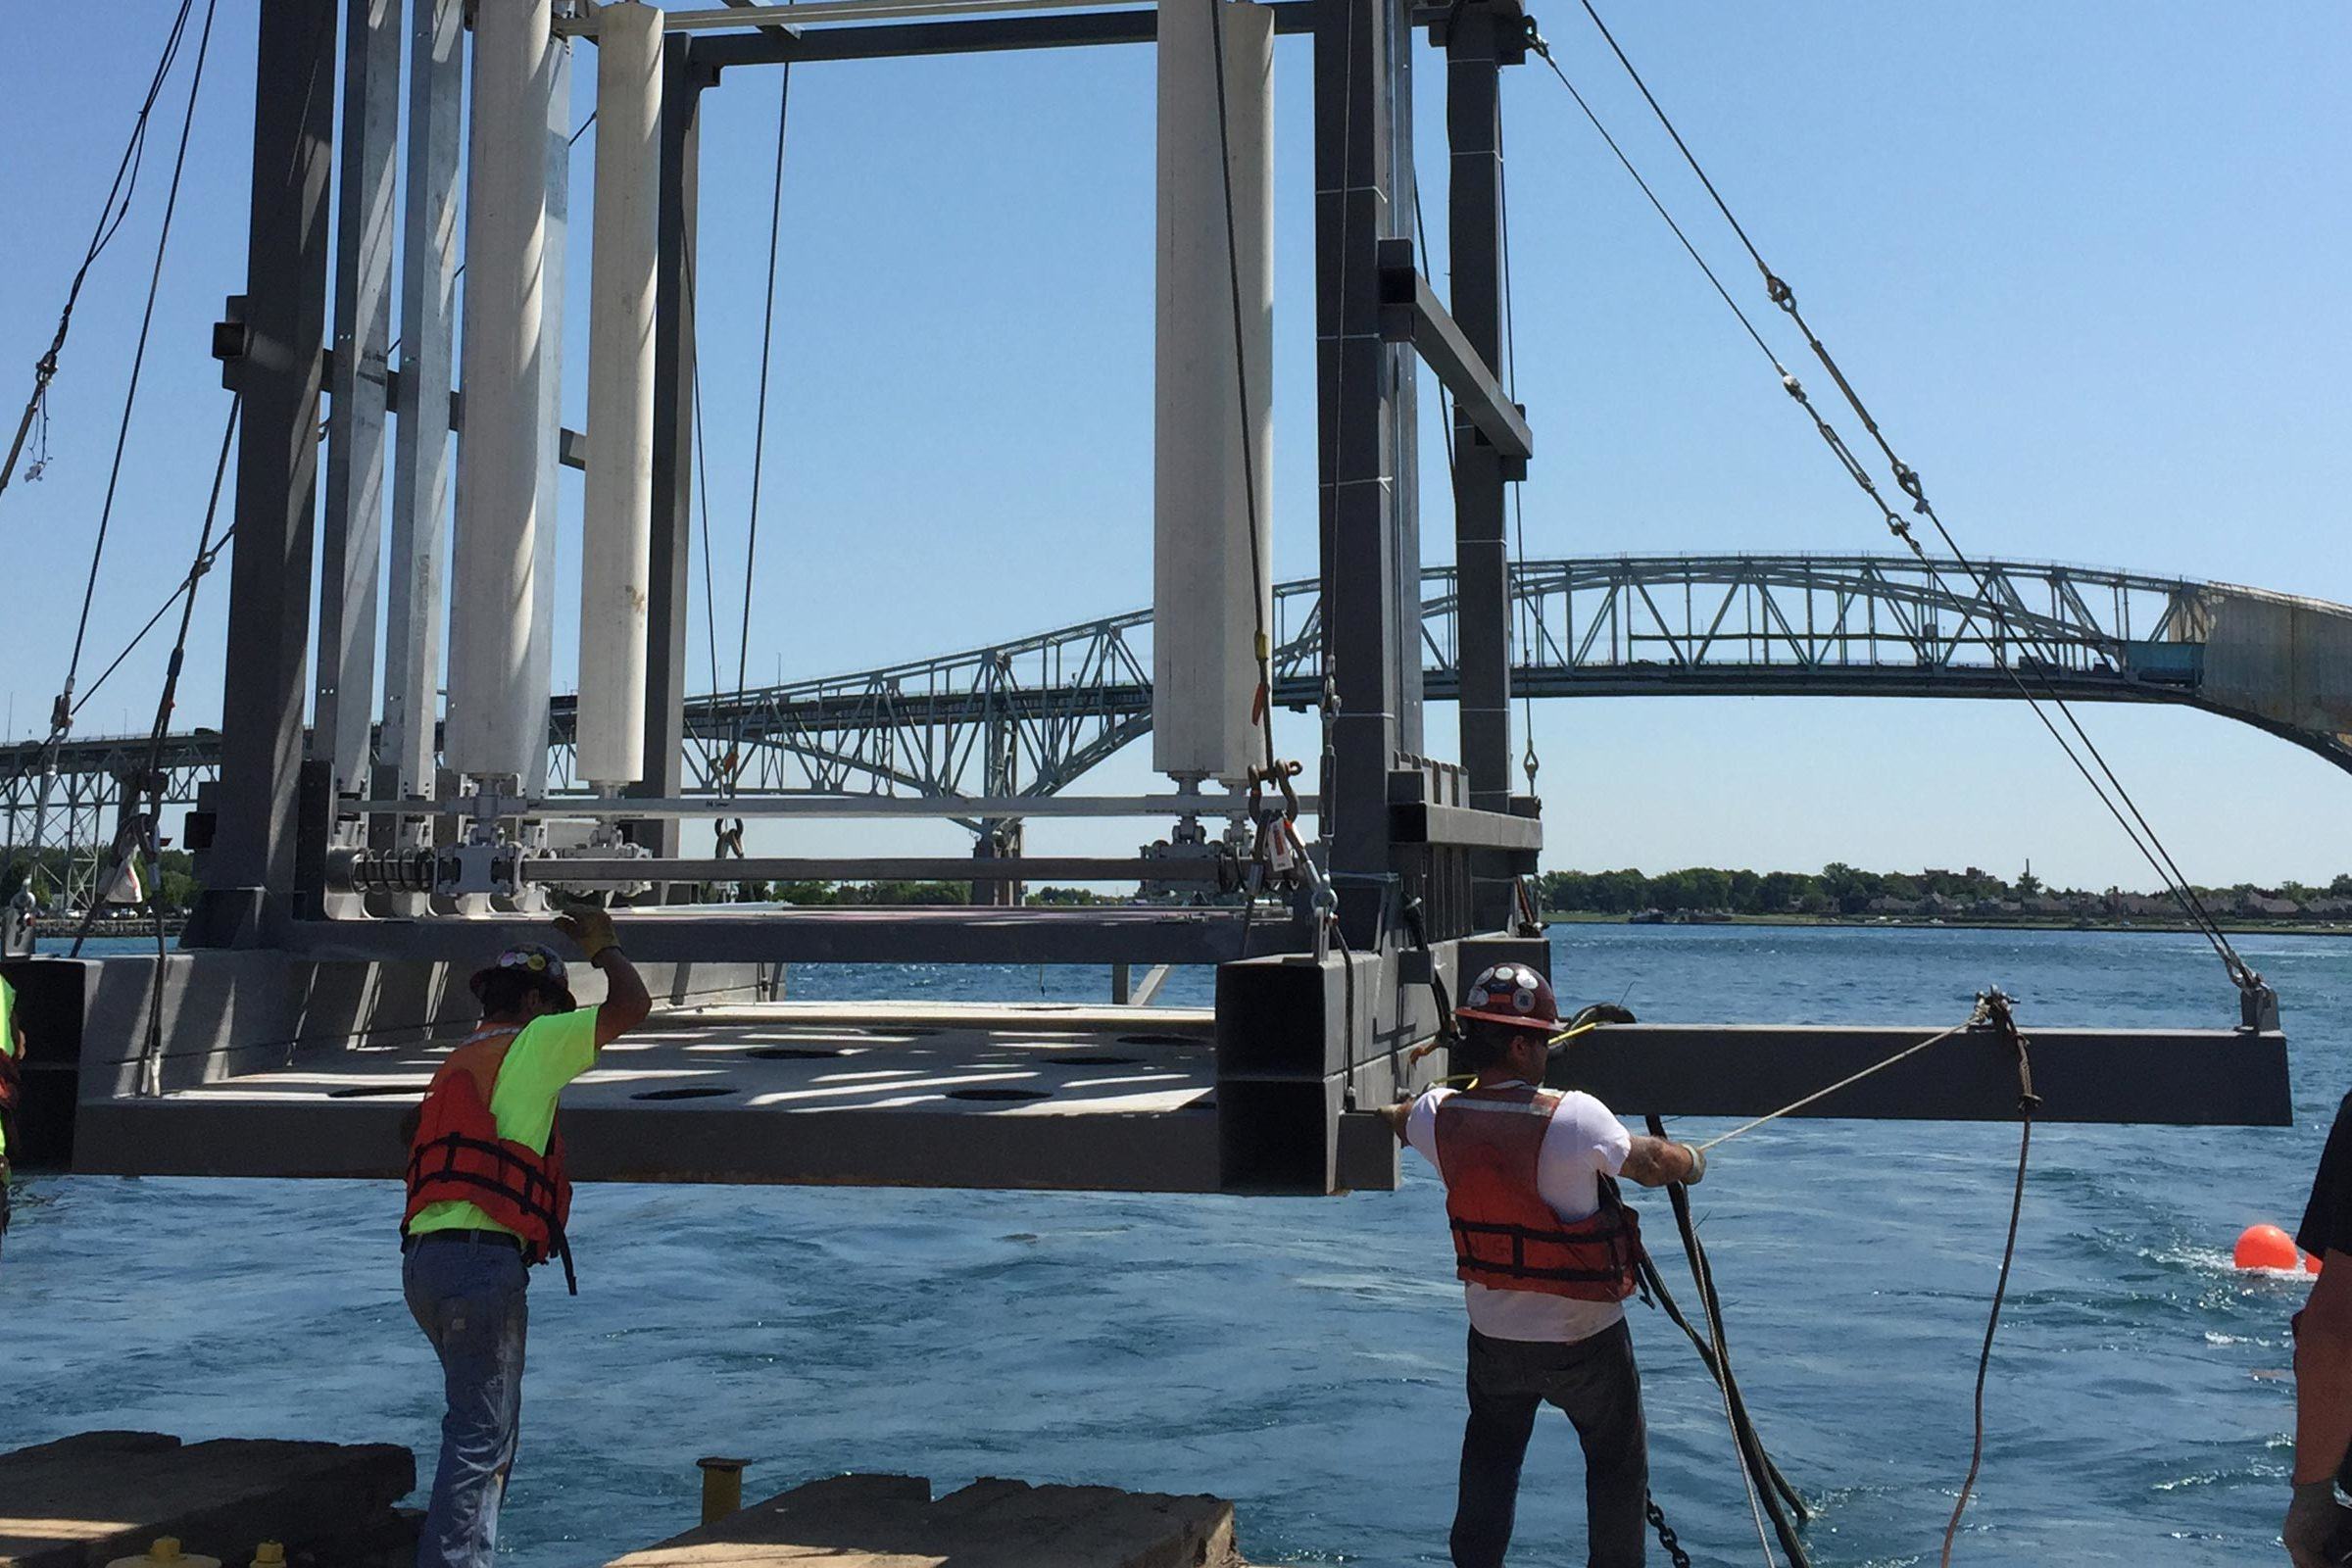 Workers prepare to lower the Vivace device into the St. Clair river